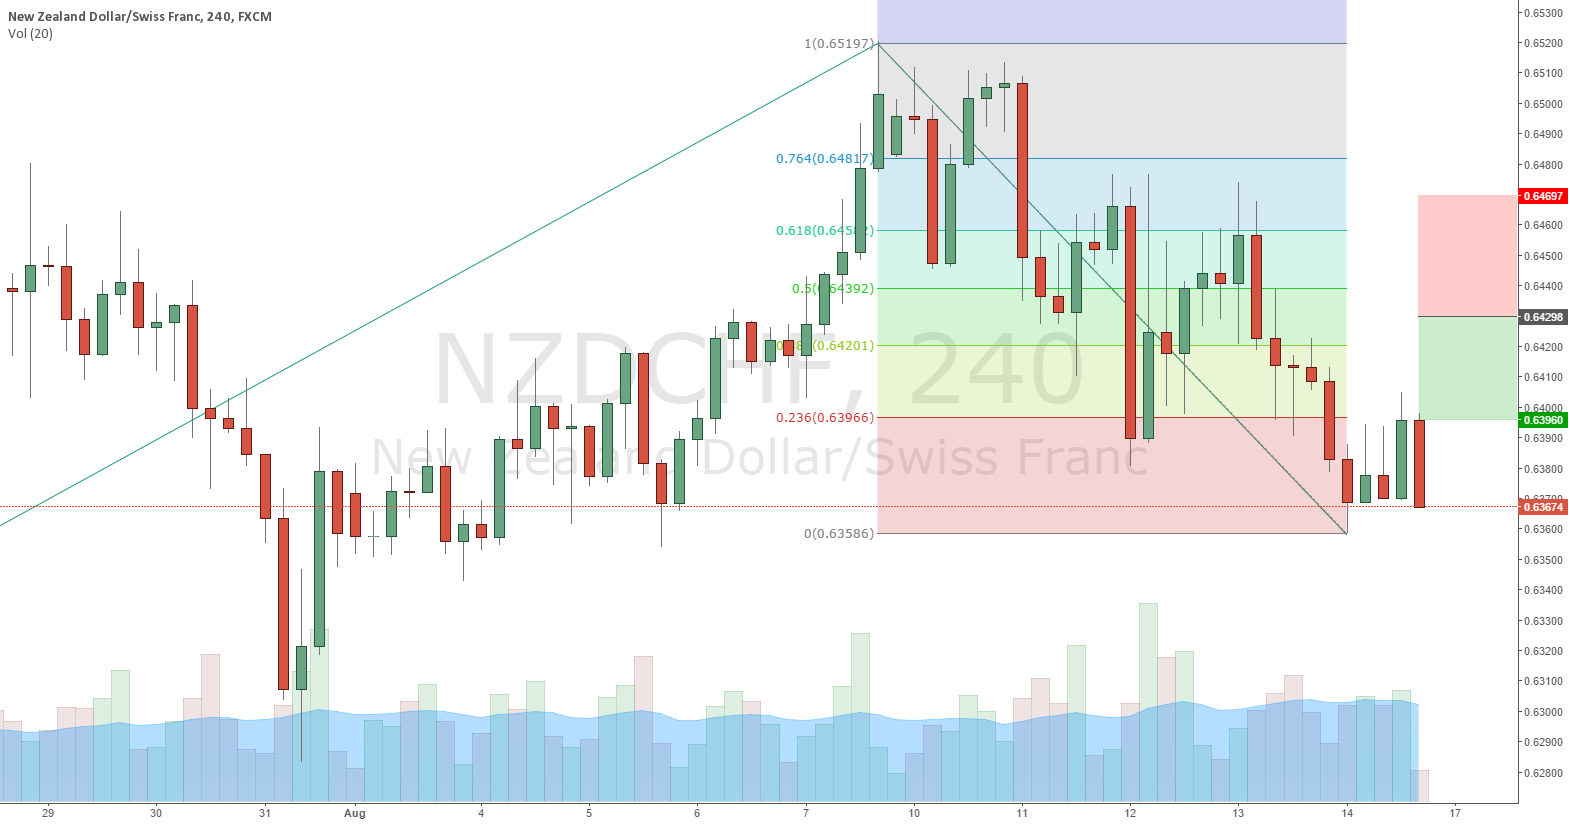 NZDCHF sell position is around 0.64298